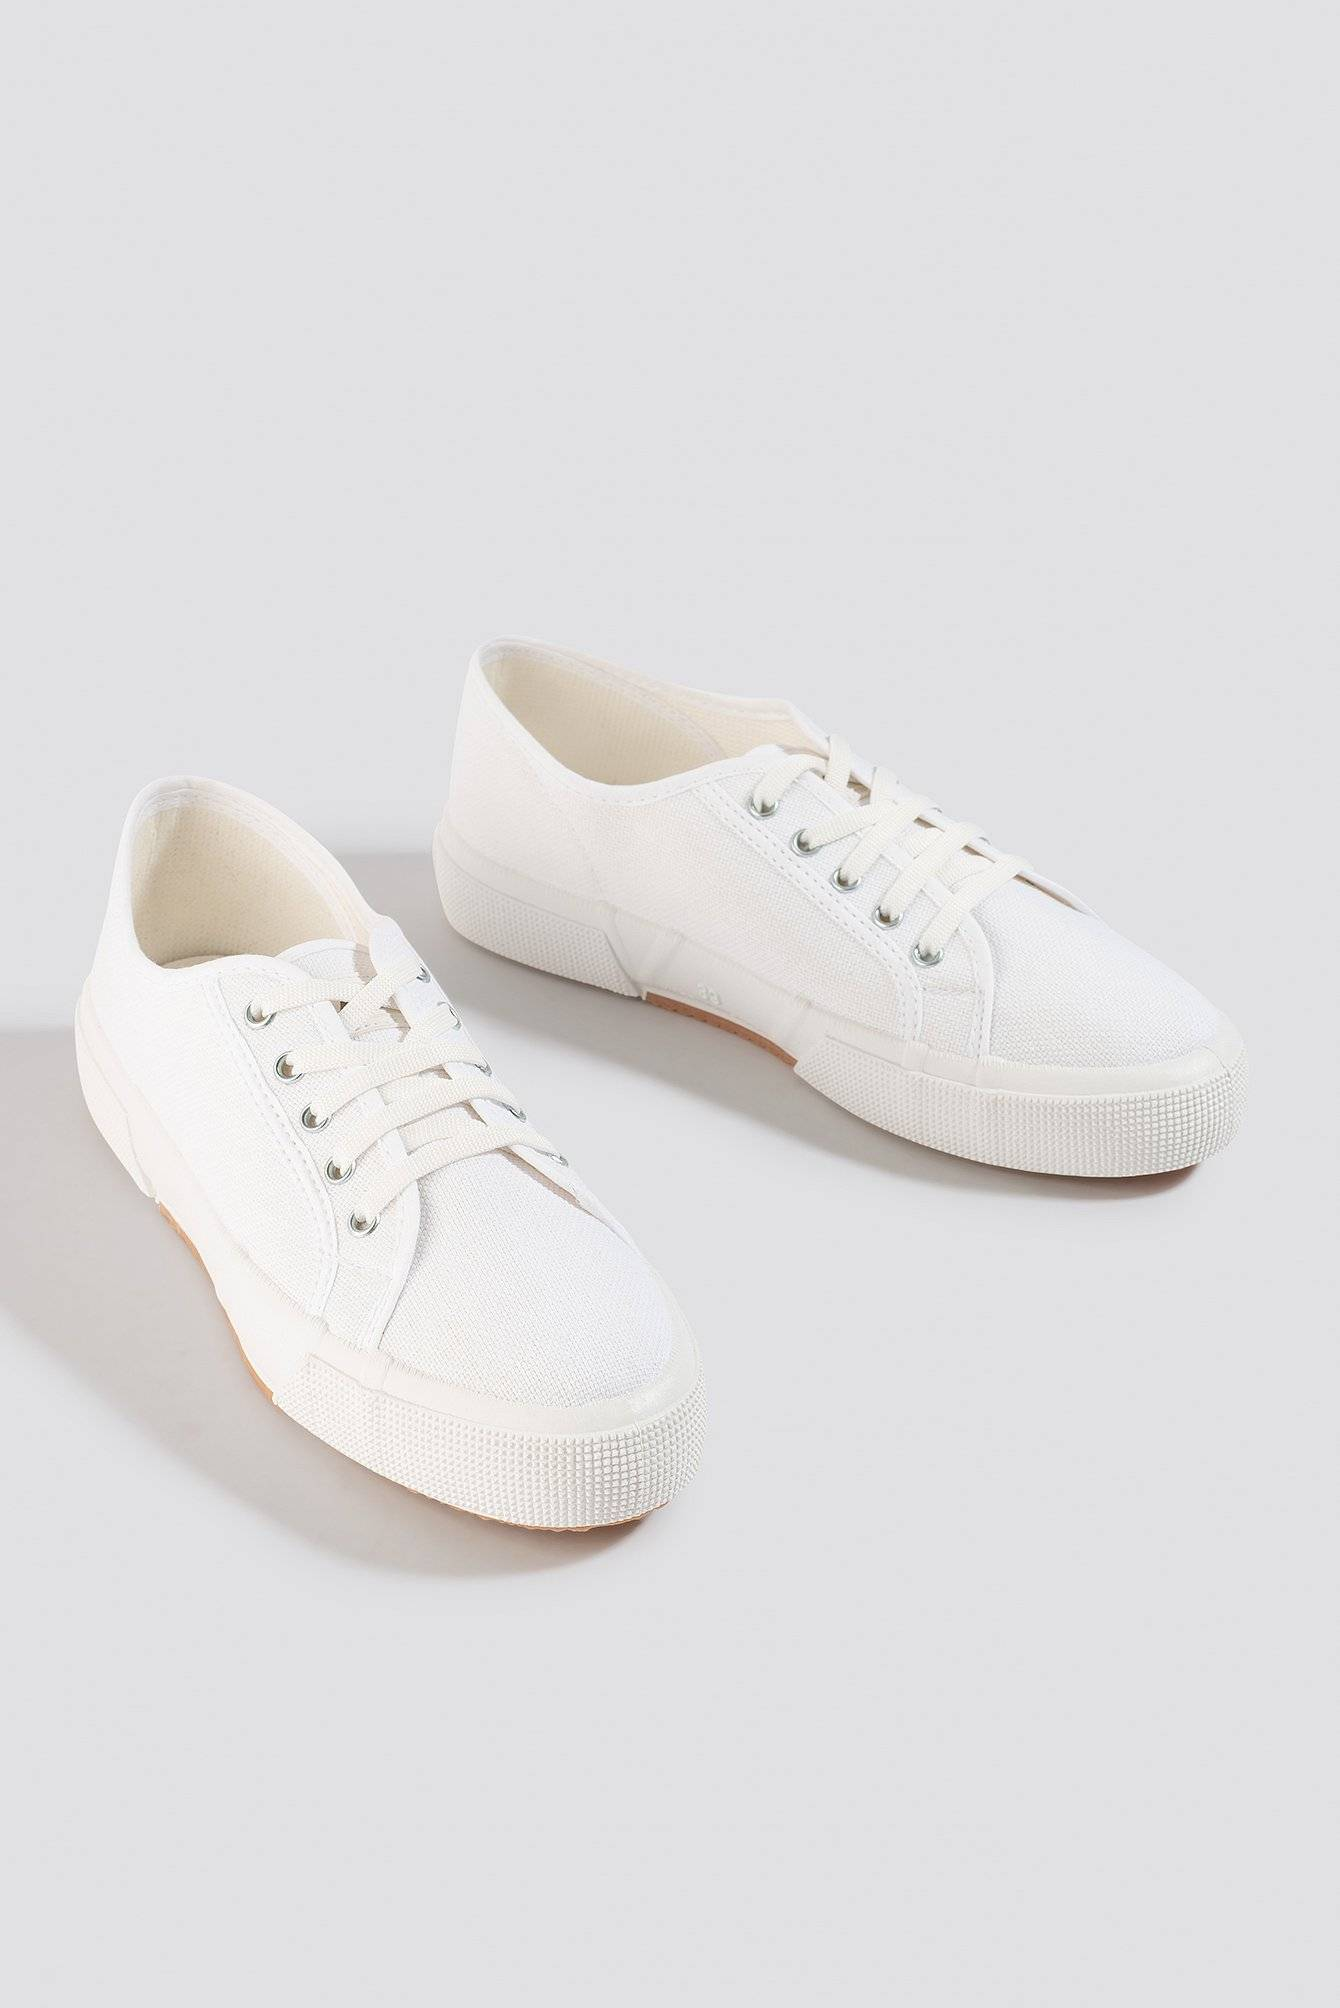 NA-KD Shoes Basic Canvas Sneakers - White